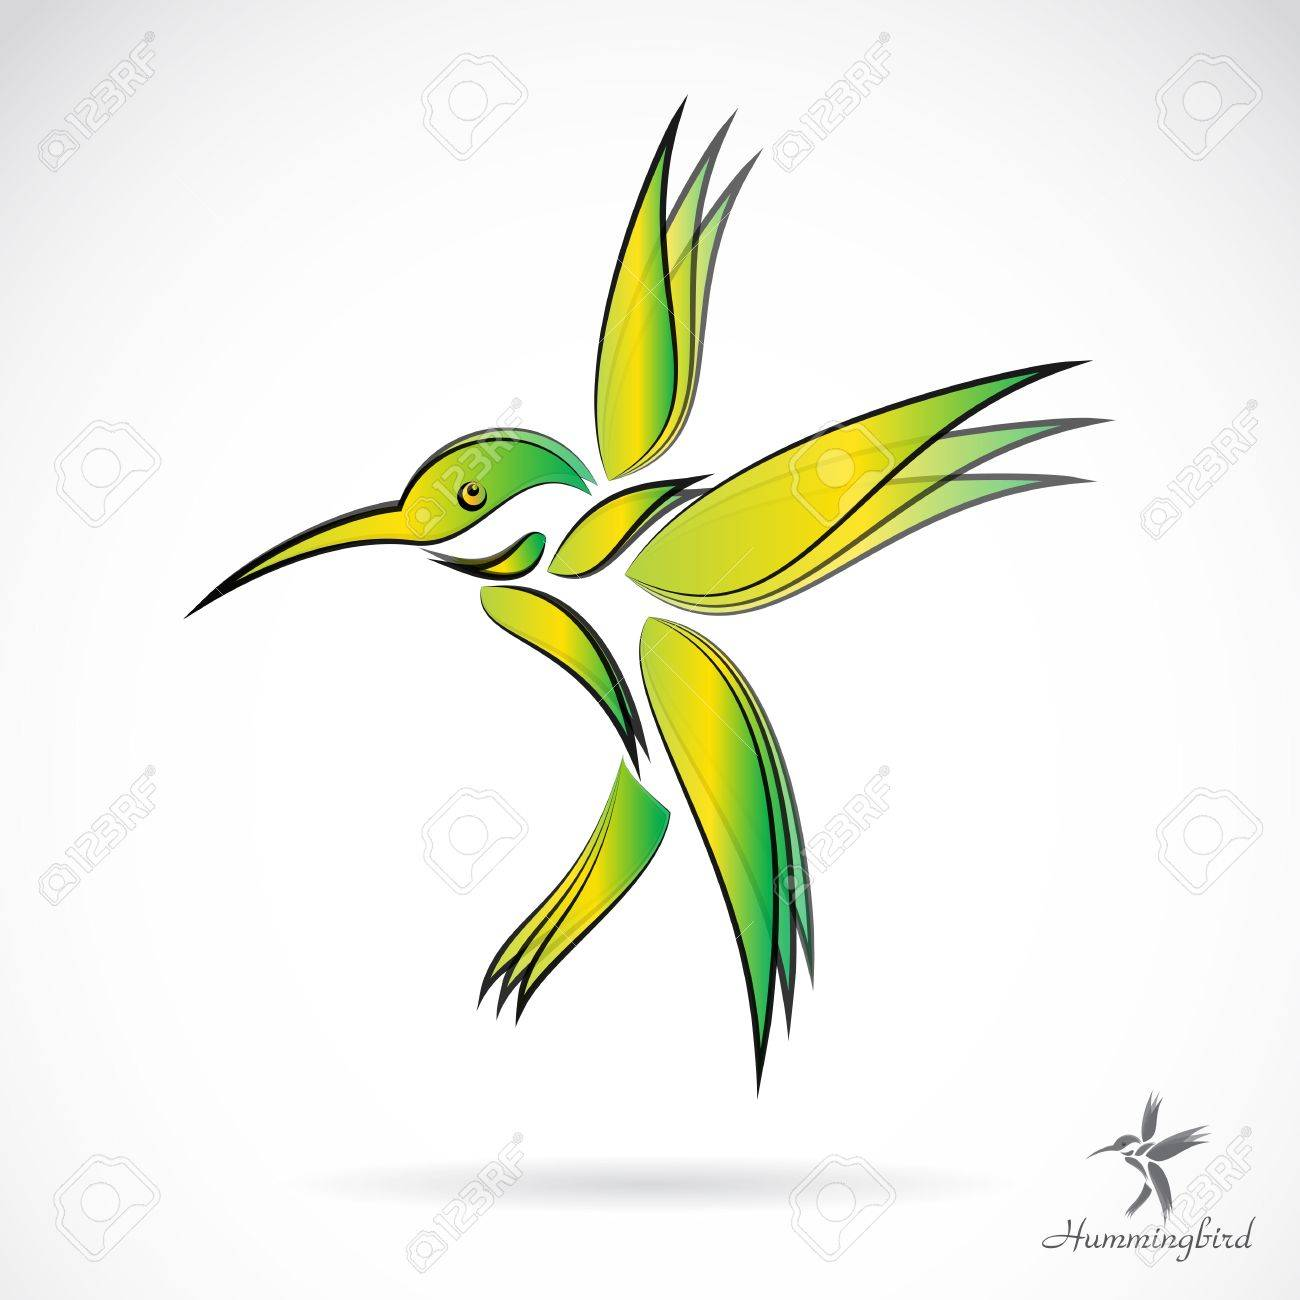 Vector image of an hummingbird on white background Stock Vector - 19028730